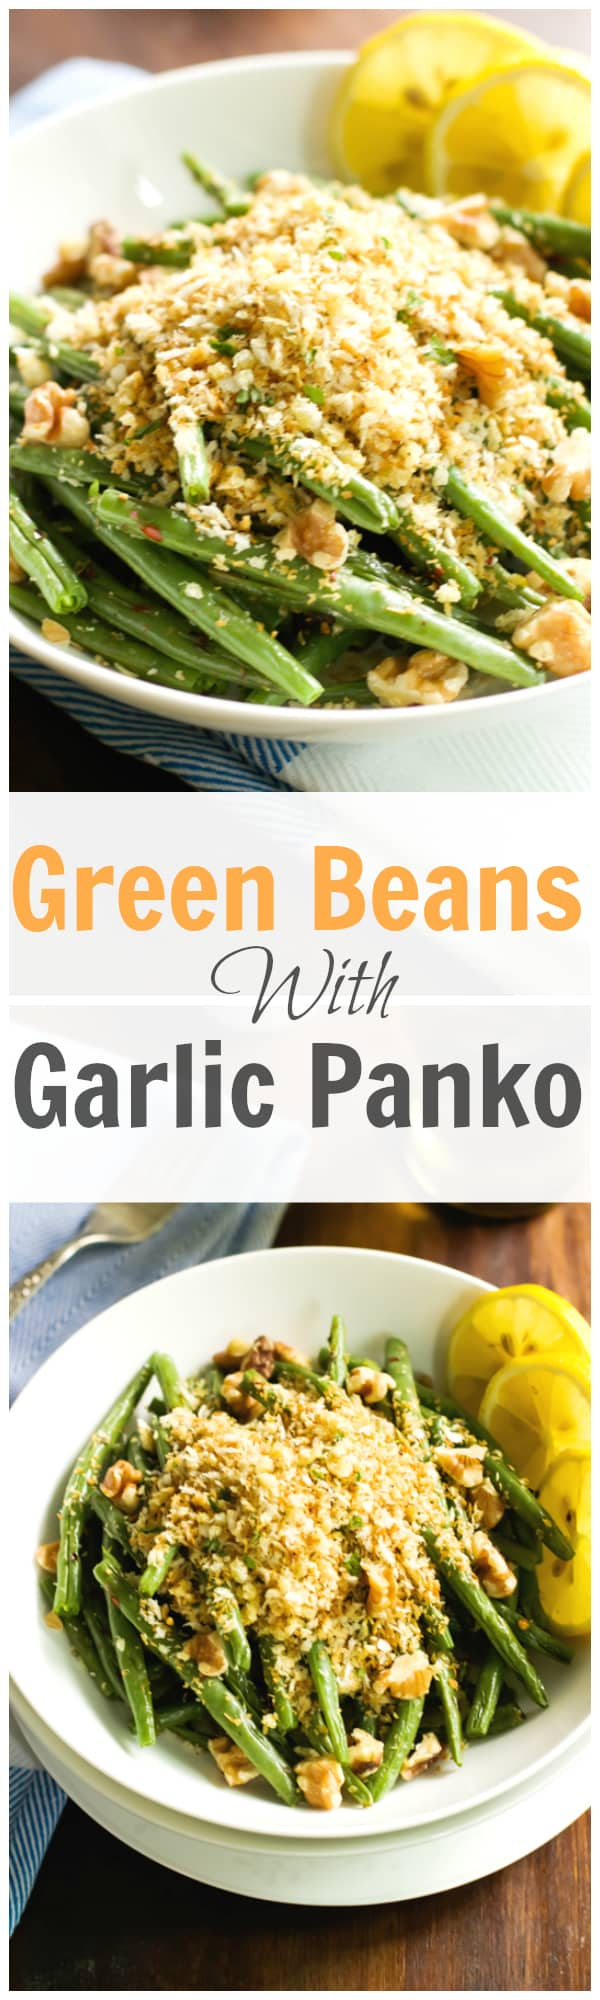 Green Beans with Garlic Panko